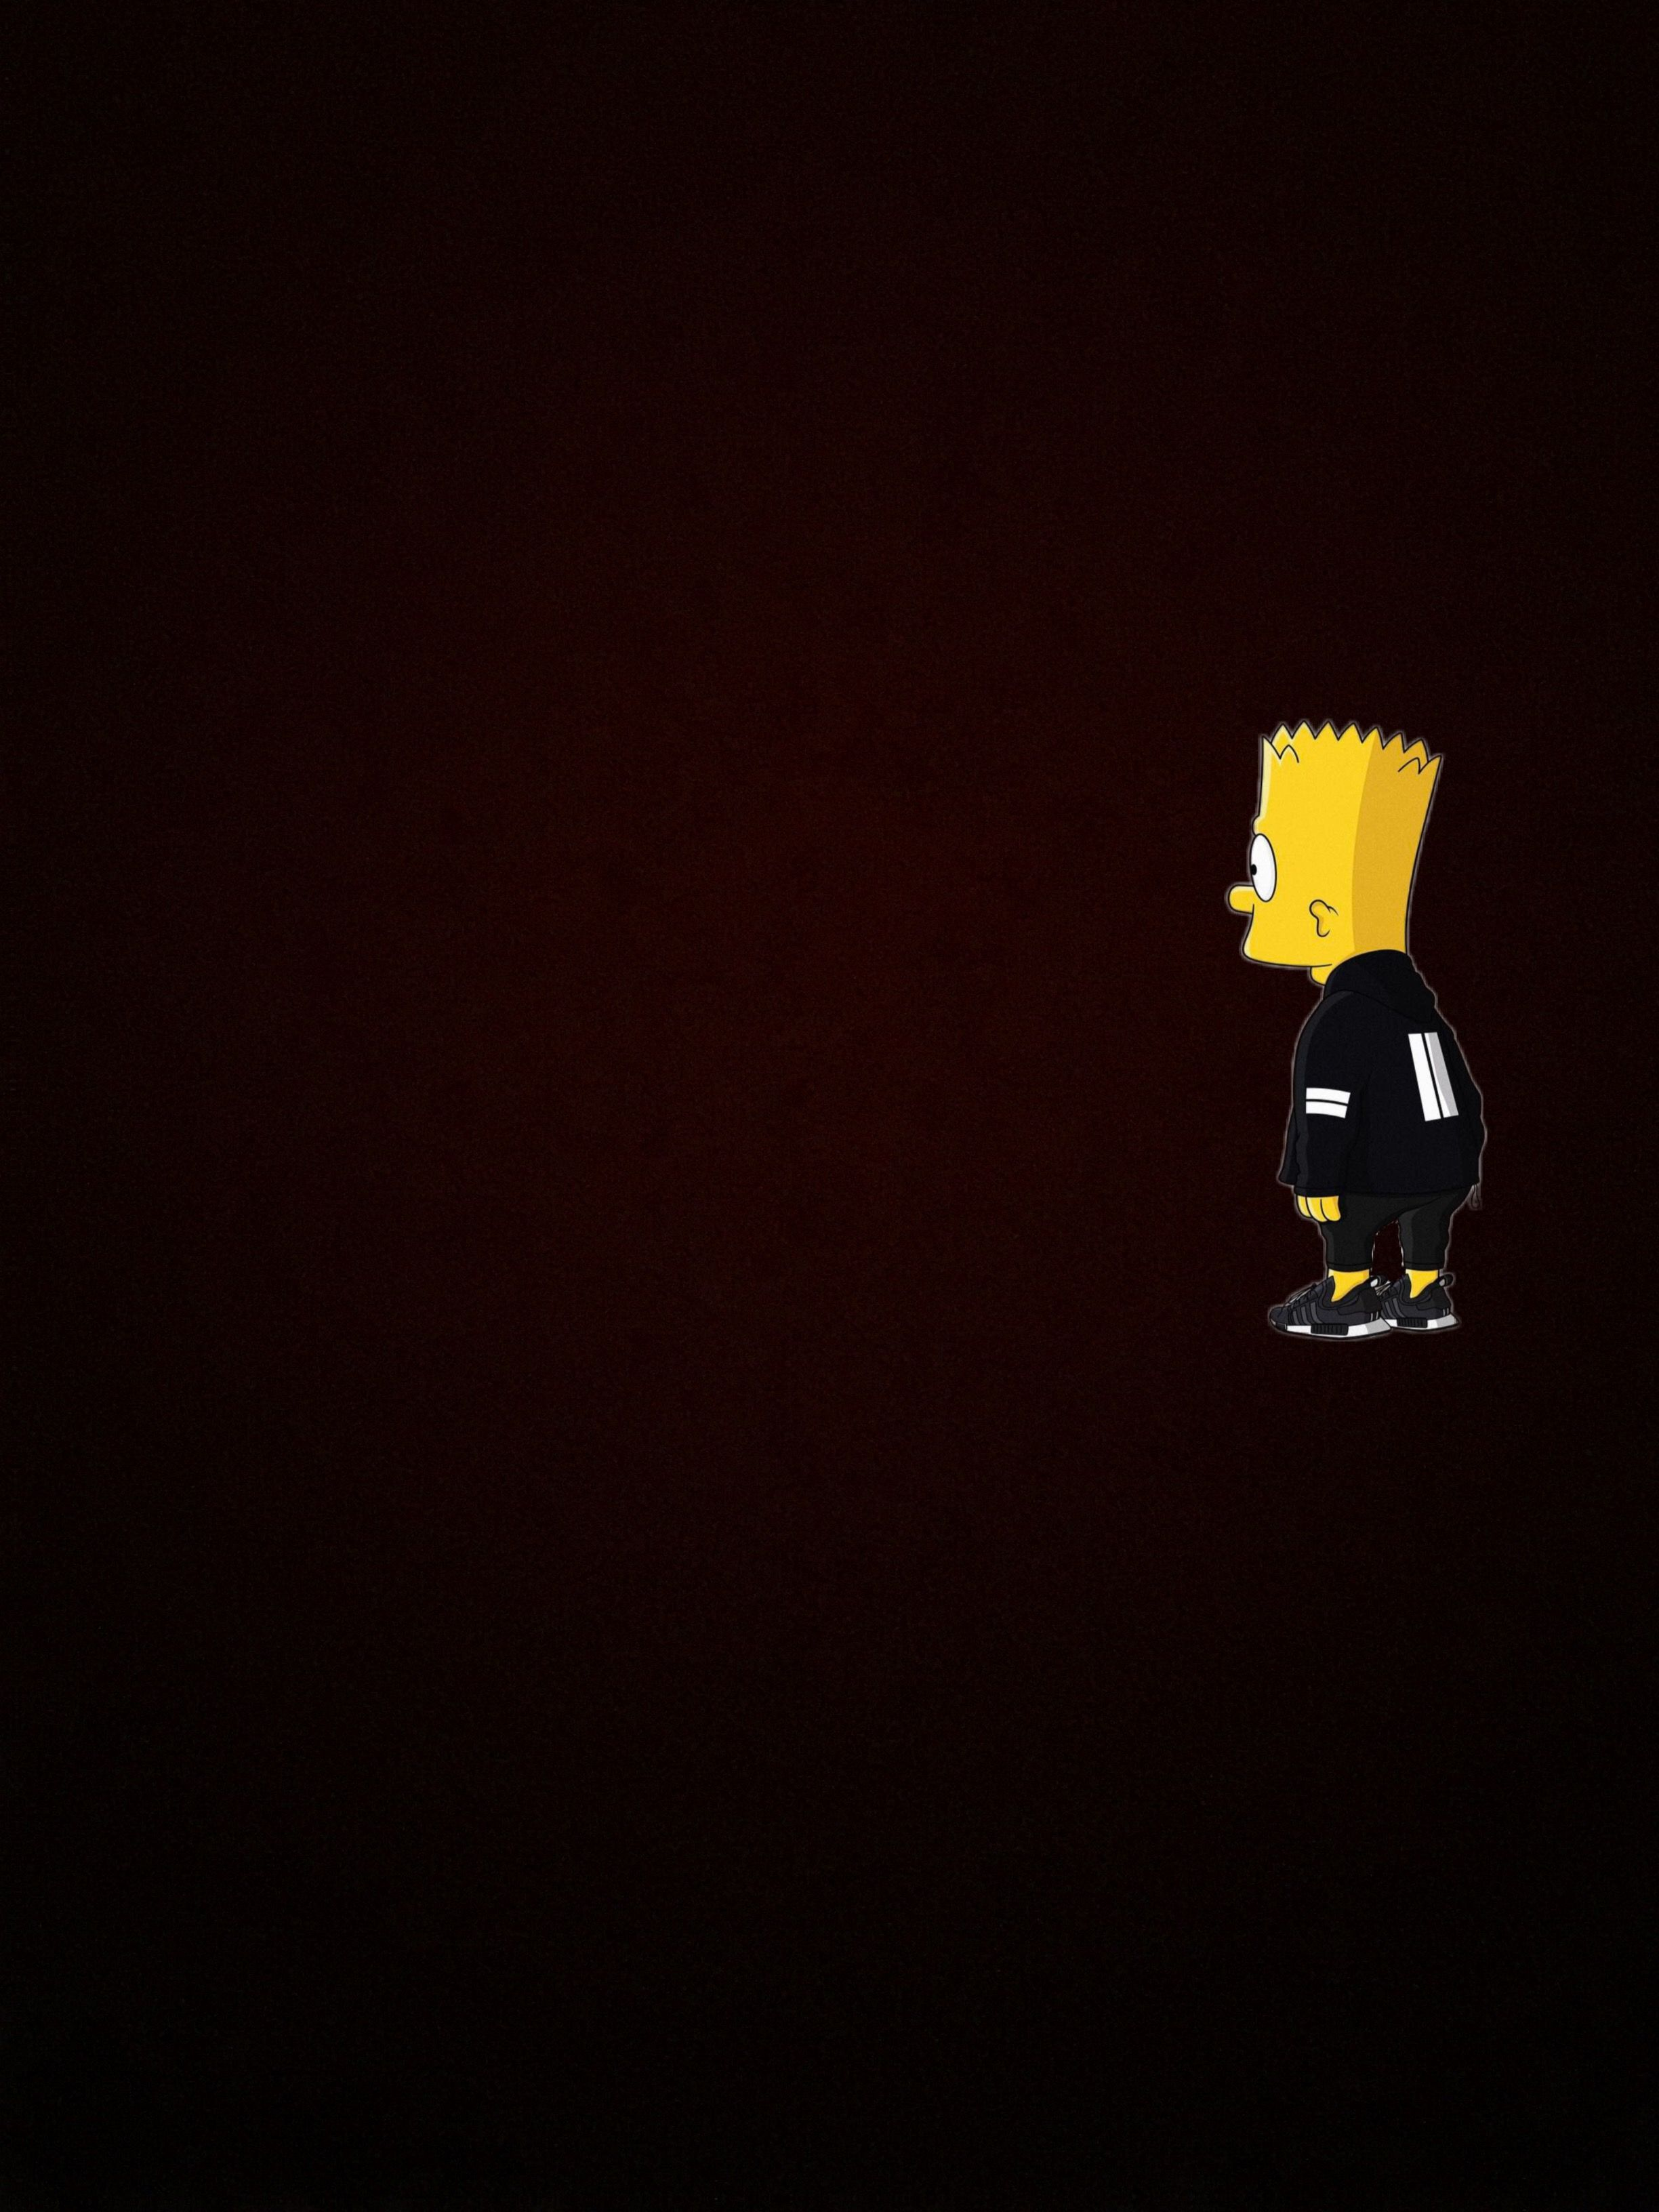 Bart Simpson Iphone Wallpapers On Wallpaperdog